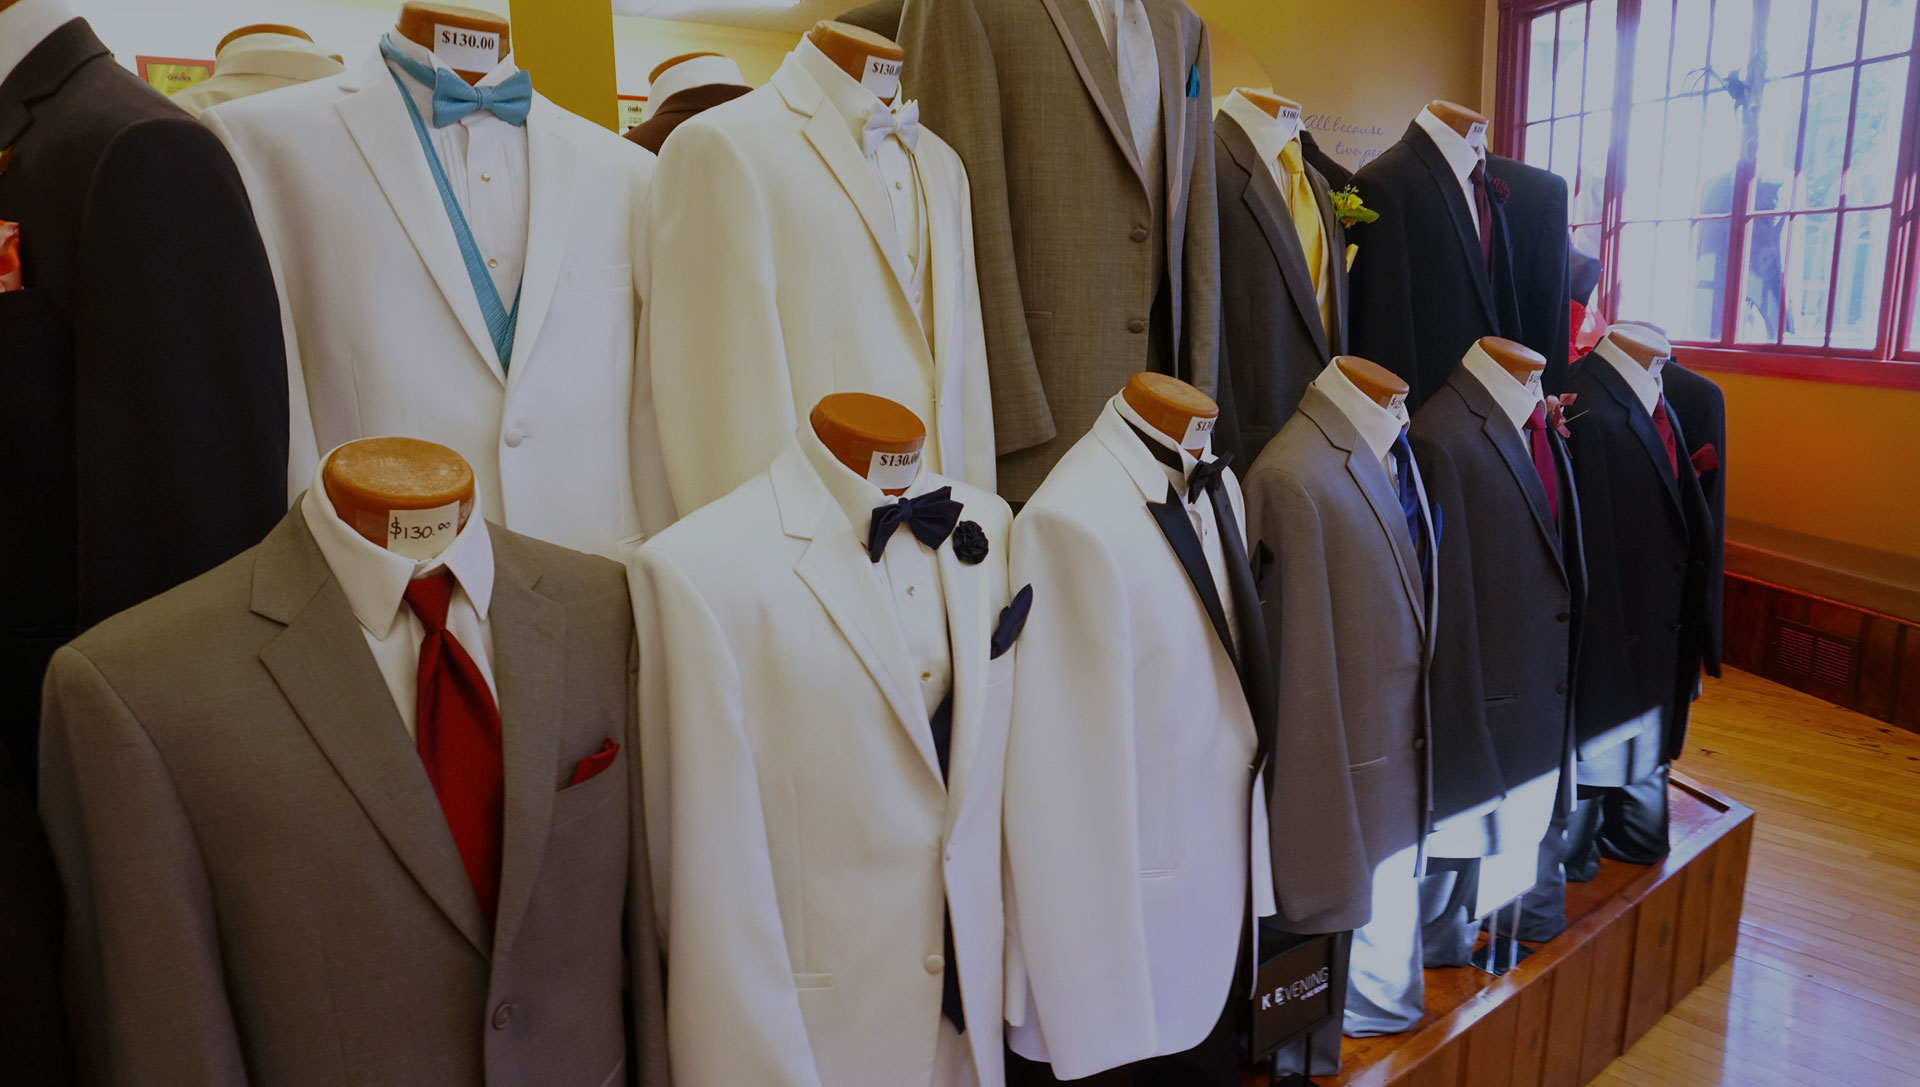 Tuxedos for Rent